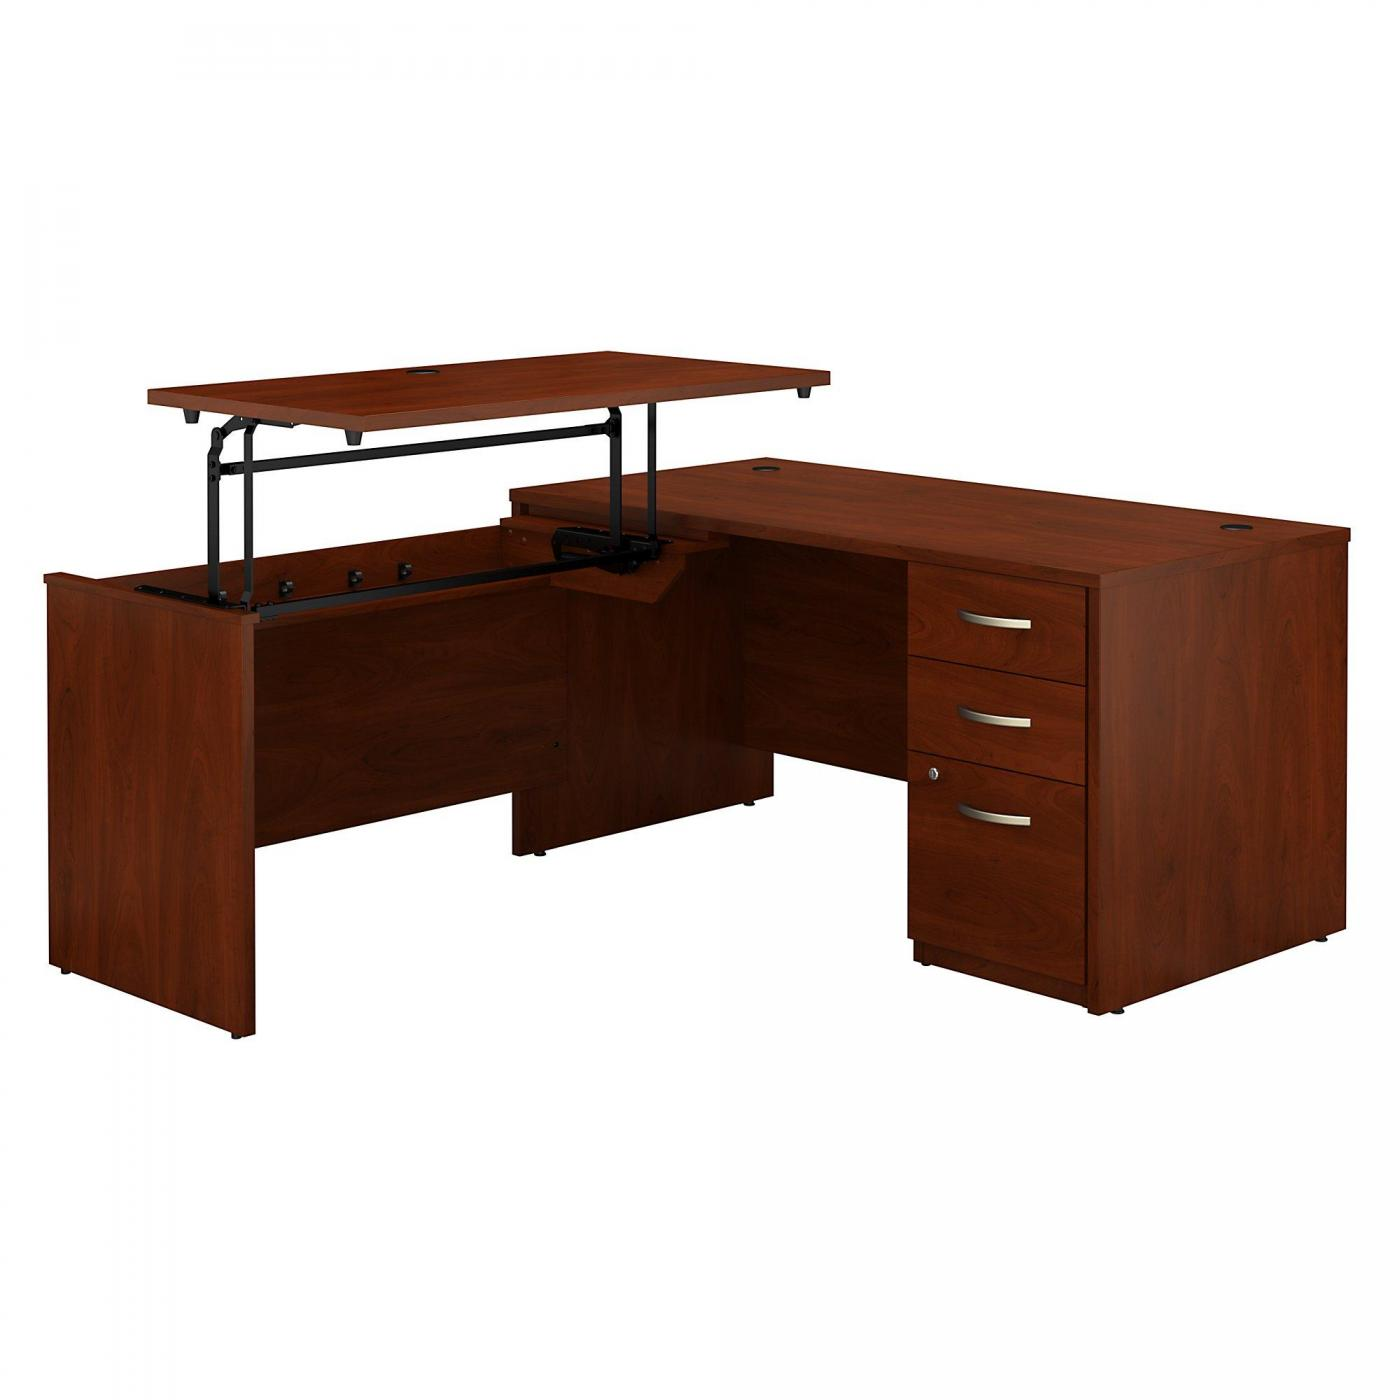 <font color=#c60><b>BUSH BUSINESS FURNITURE SERIES C ELITE 60W X 30D 3 POSITION SIT TO STAND L SHAPED DESK WITH 3 DRAWER FILE CABINET. FREE SHIPPING. VIDEO:</font></b></font></b>